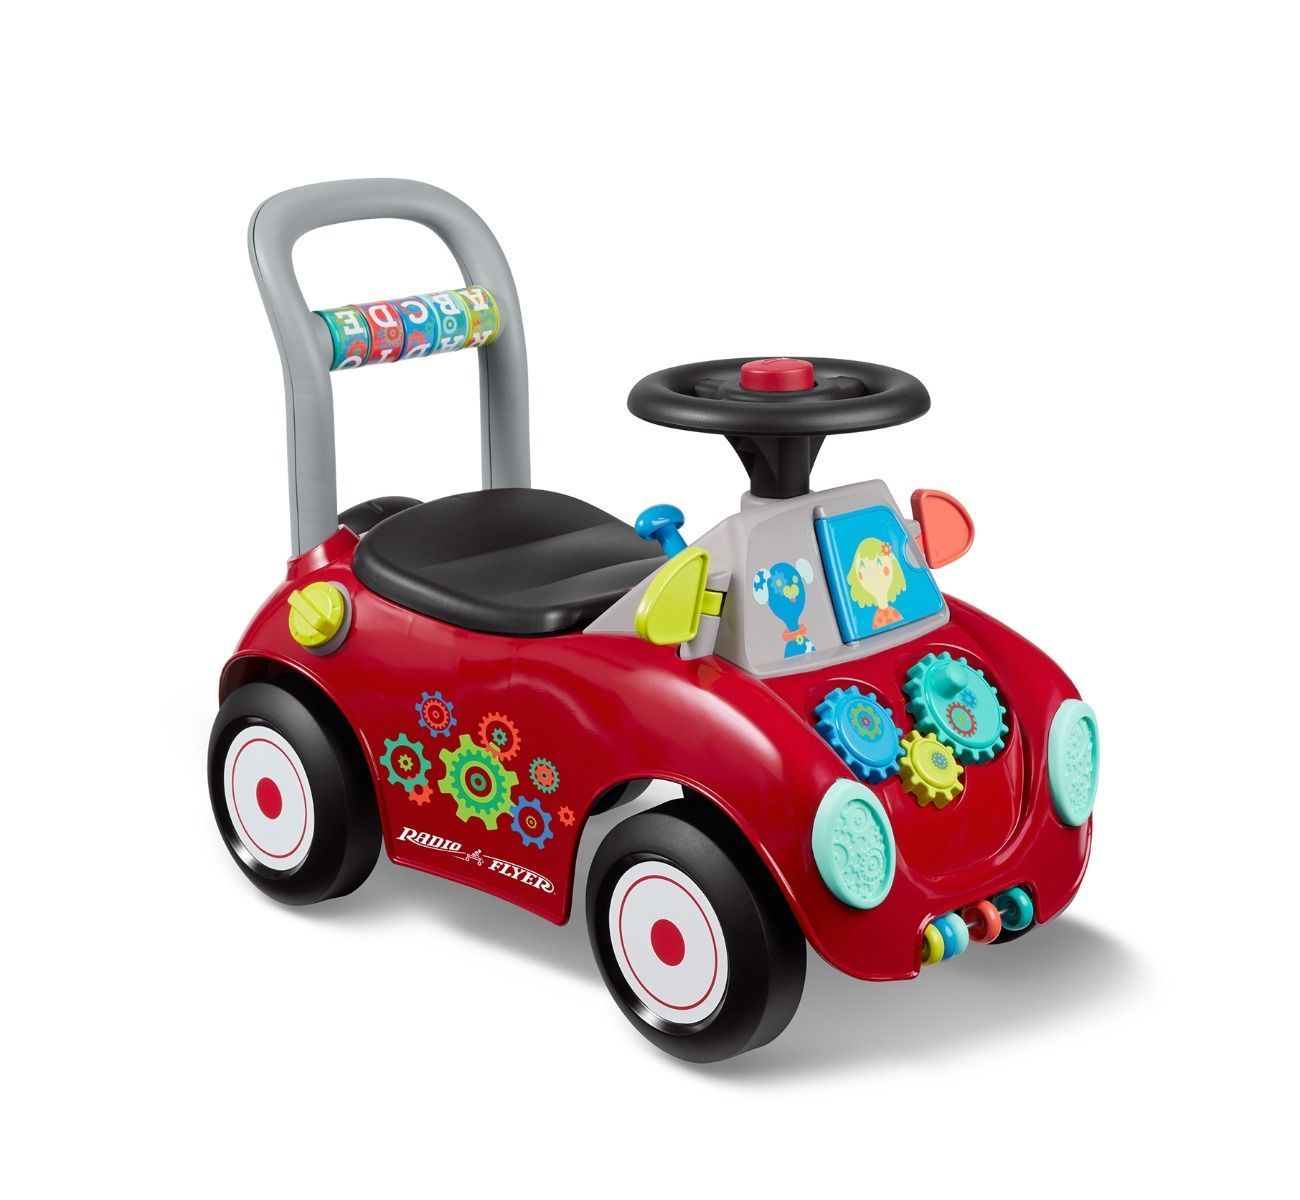 30 Best Toys For 1 Year Olds 2021 Gifts For 12 Month Old Boys And Girls